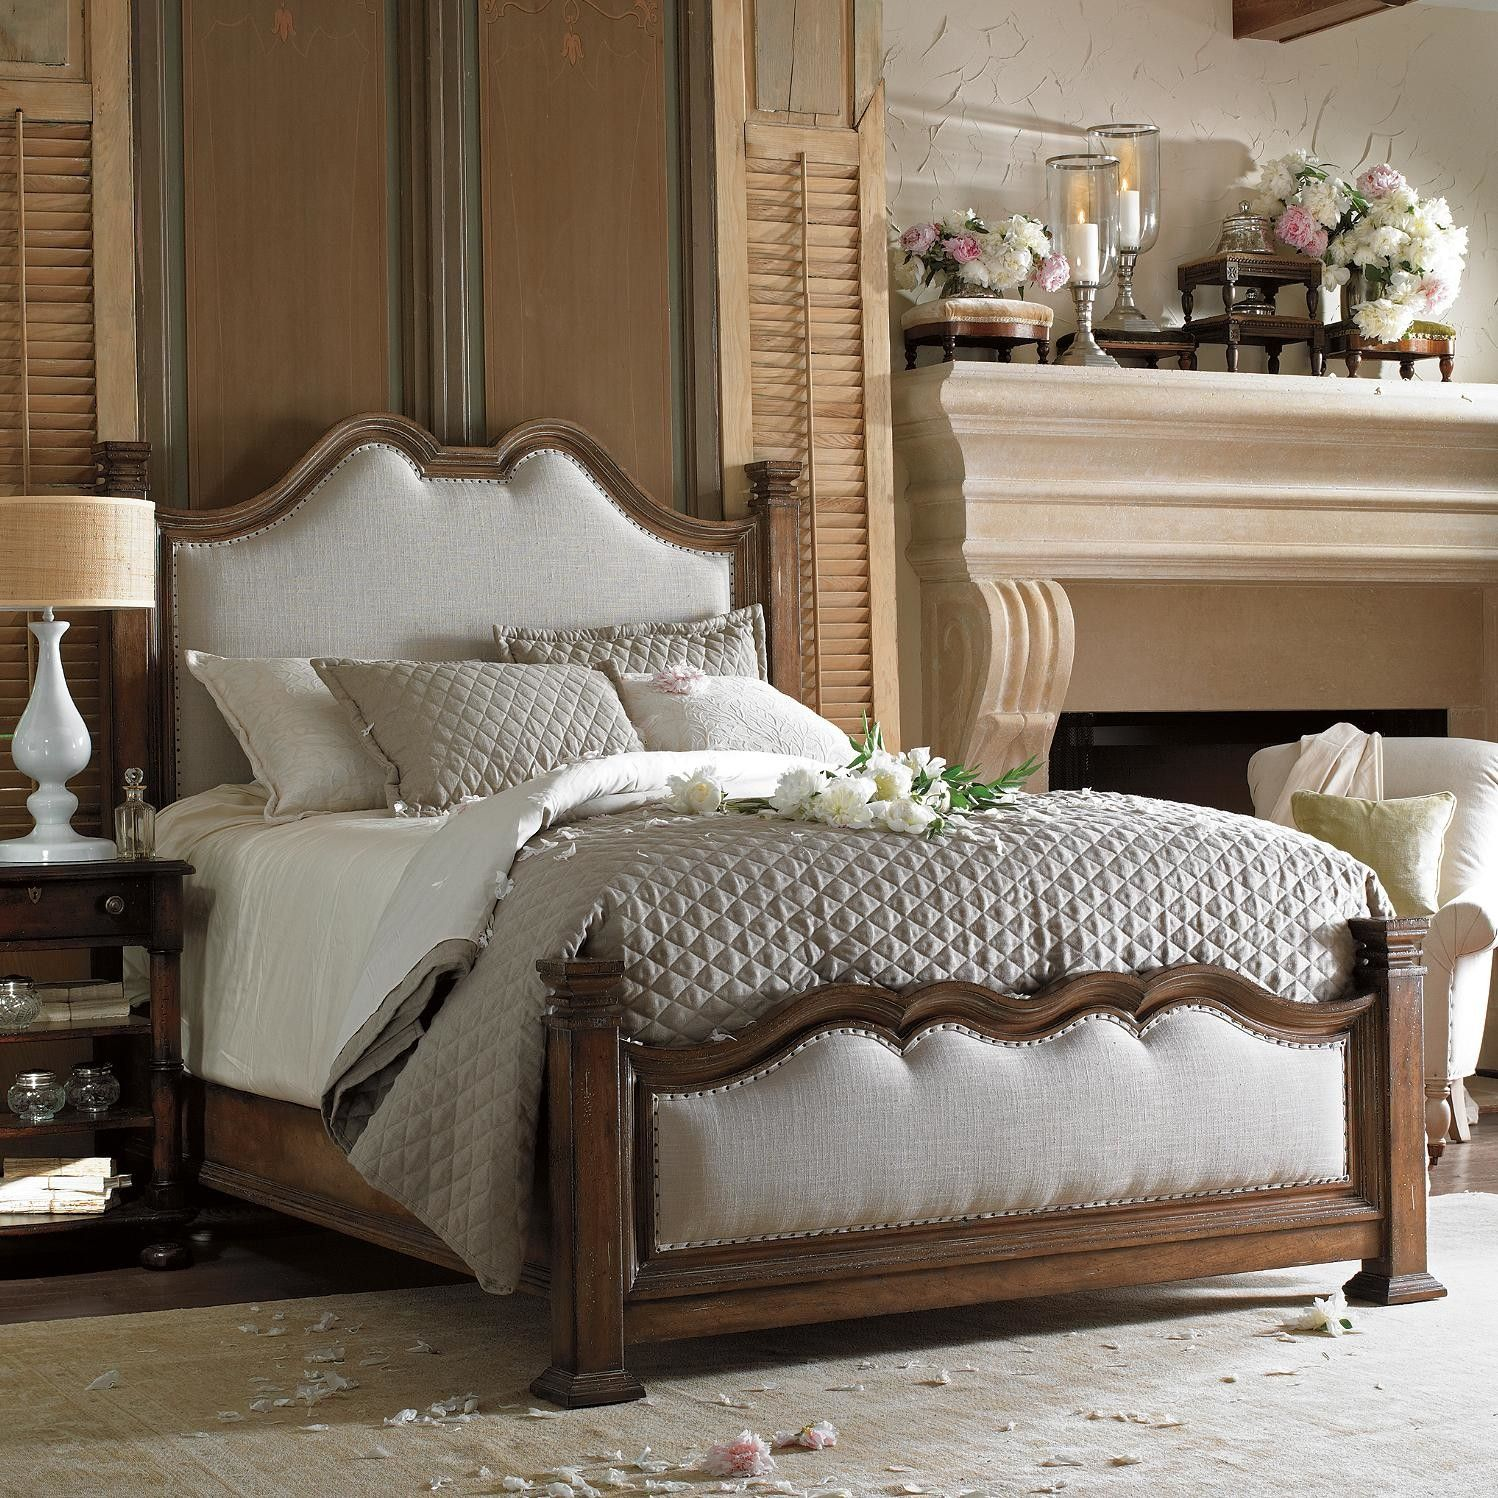 stanley furniture british colonial bed | WEST INDIES DECOR ...